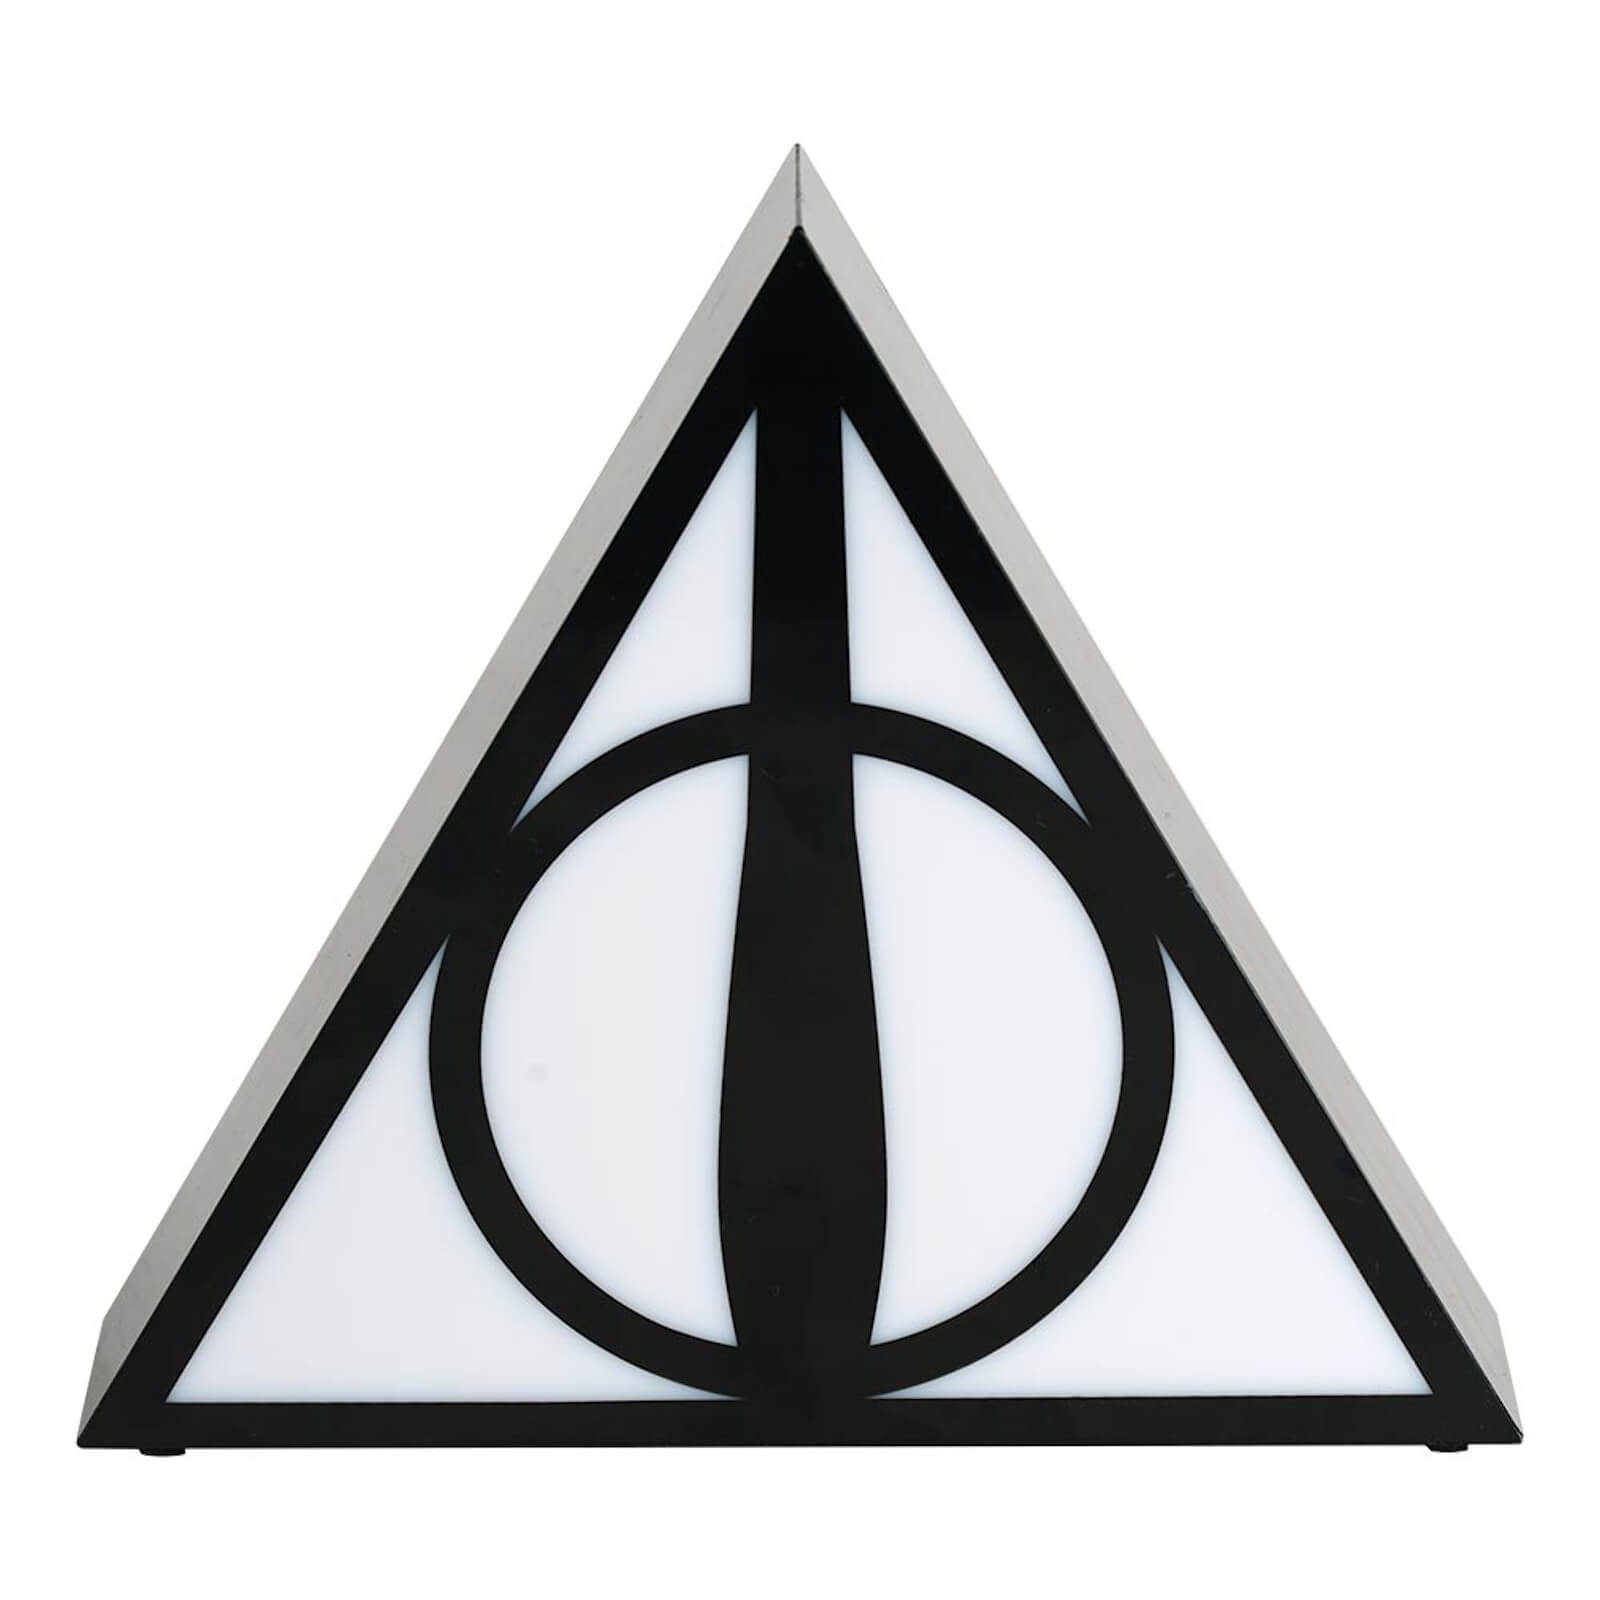 Image of Harry Potter and the Deathly Hallows 8 Inch Desk Lamp